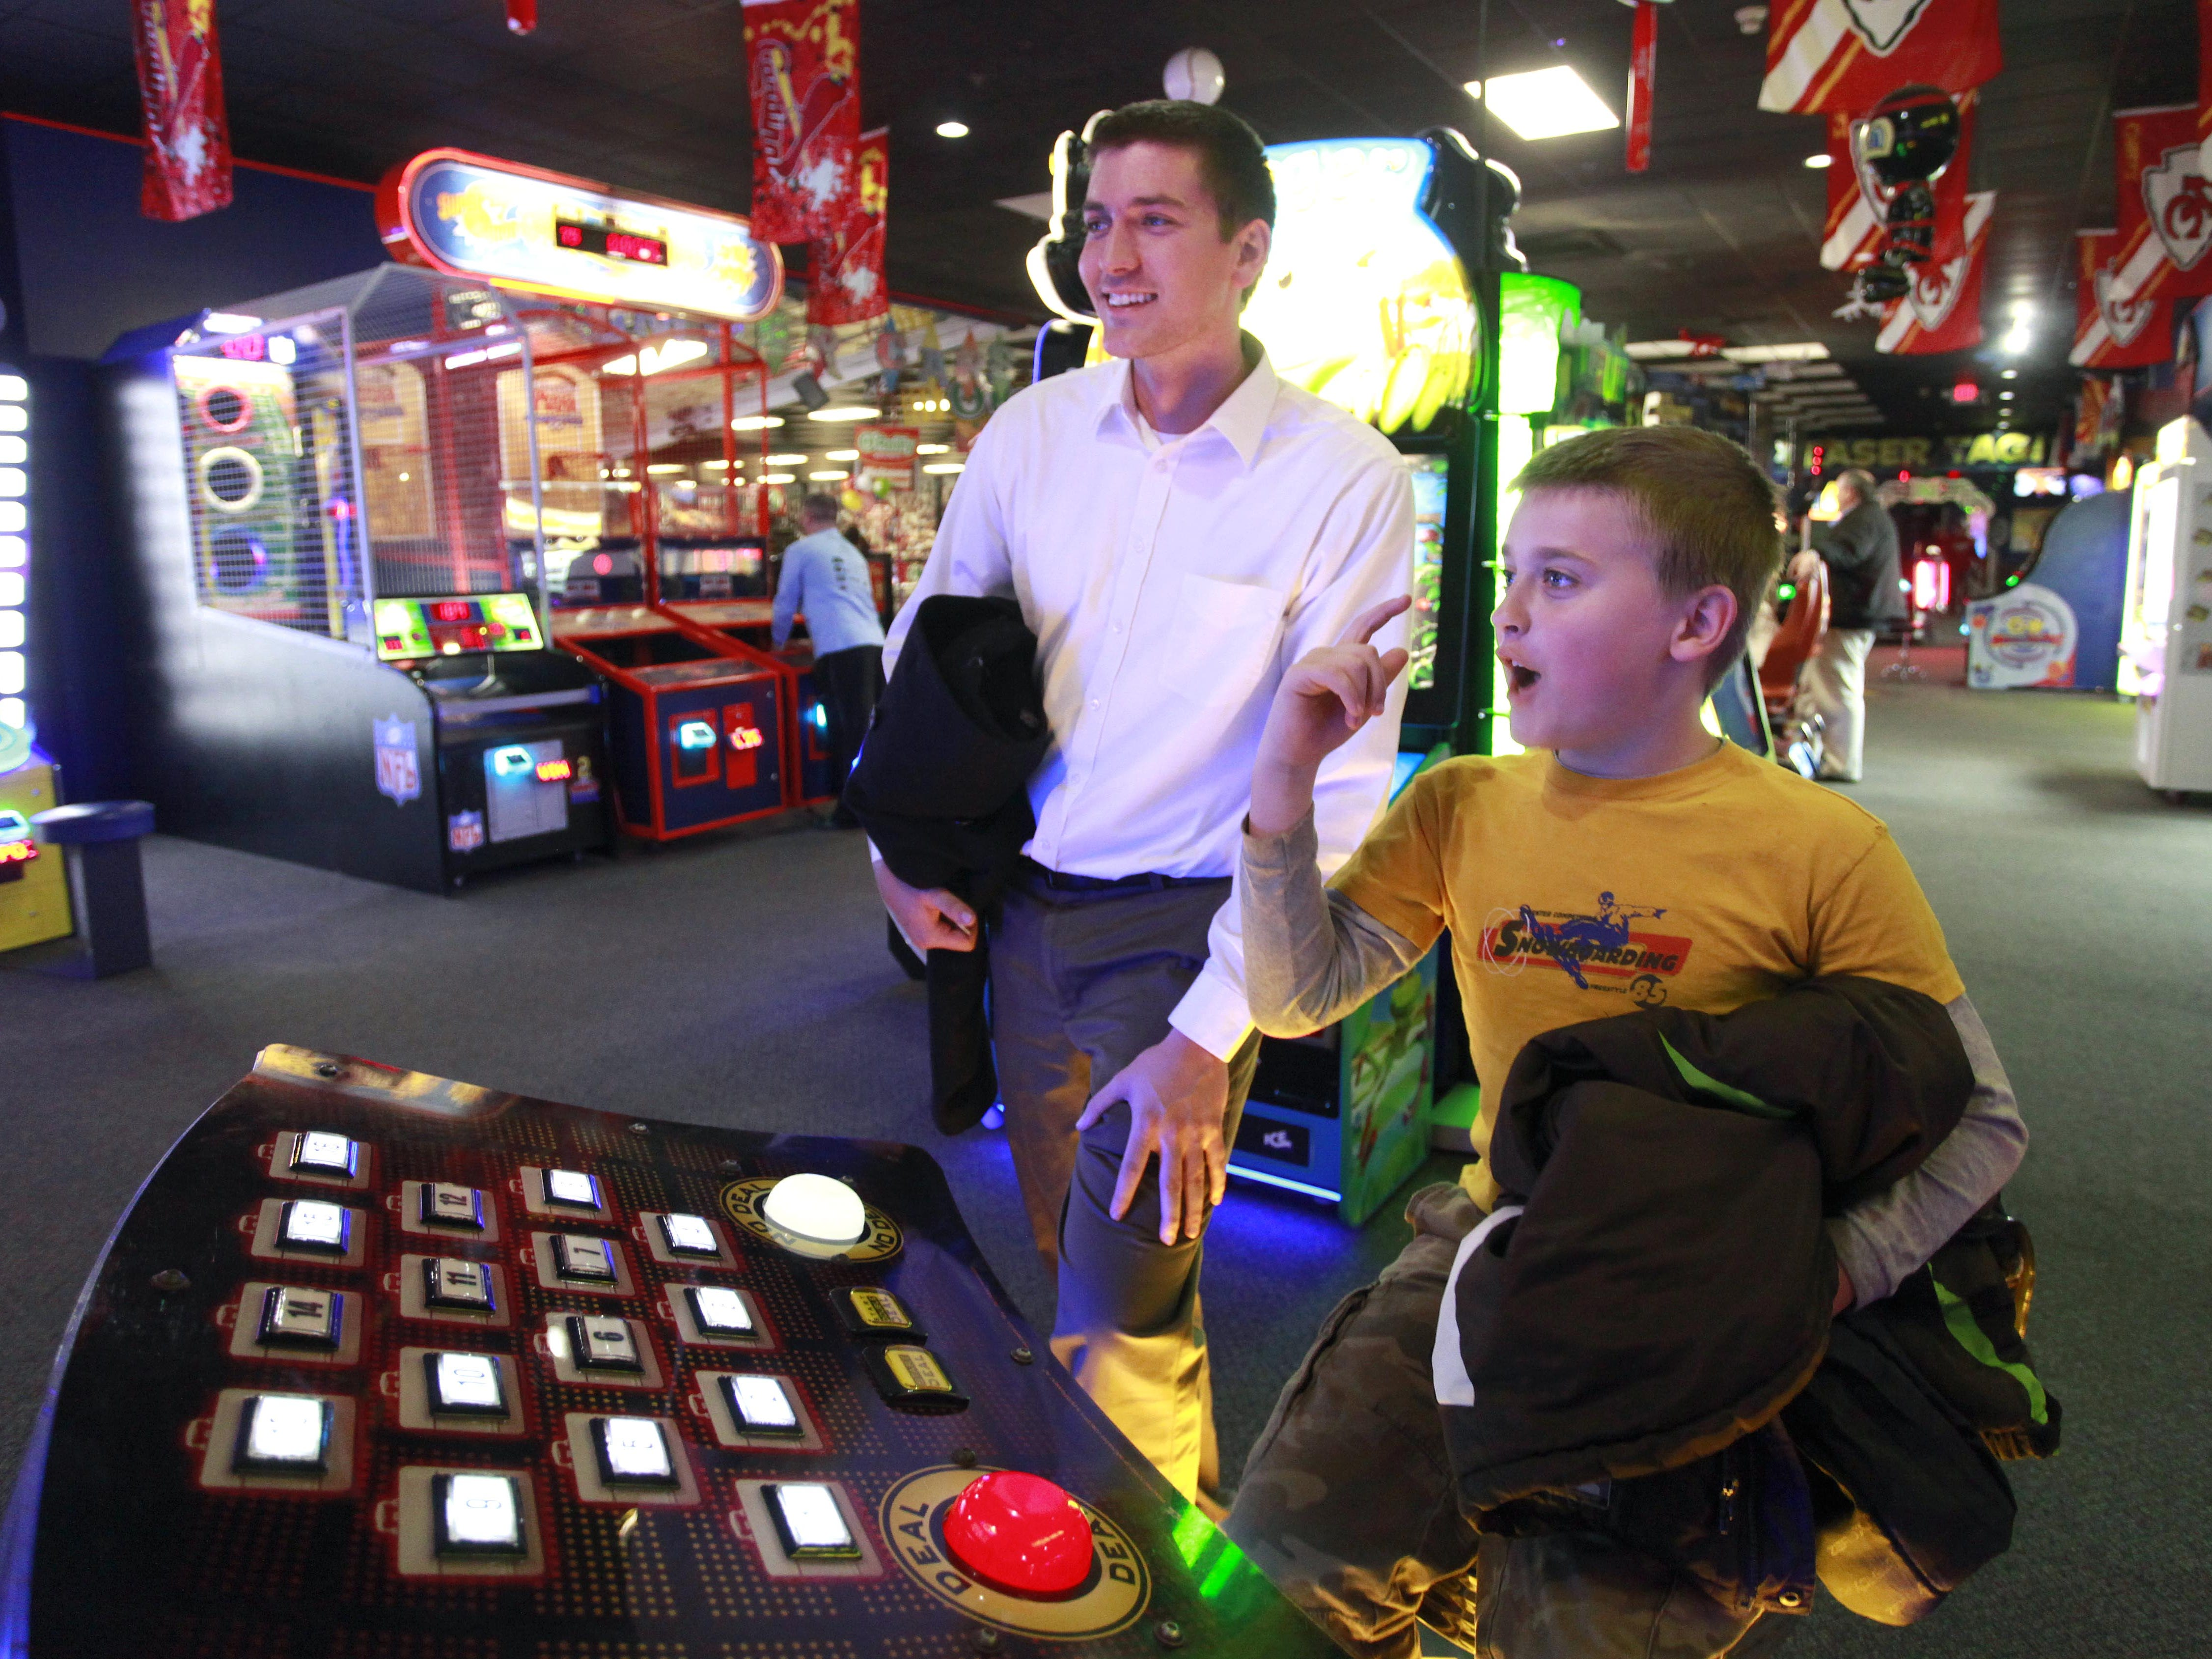 Grab some pizza and play some games. Incredible Pizza, located at 2850 S. Campbell Ave., has go-karts too.